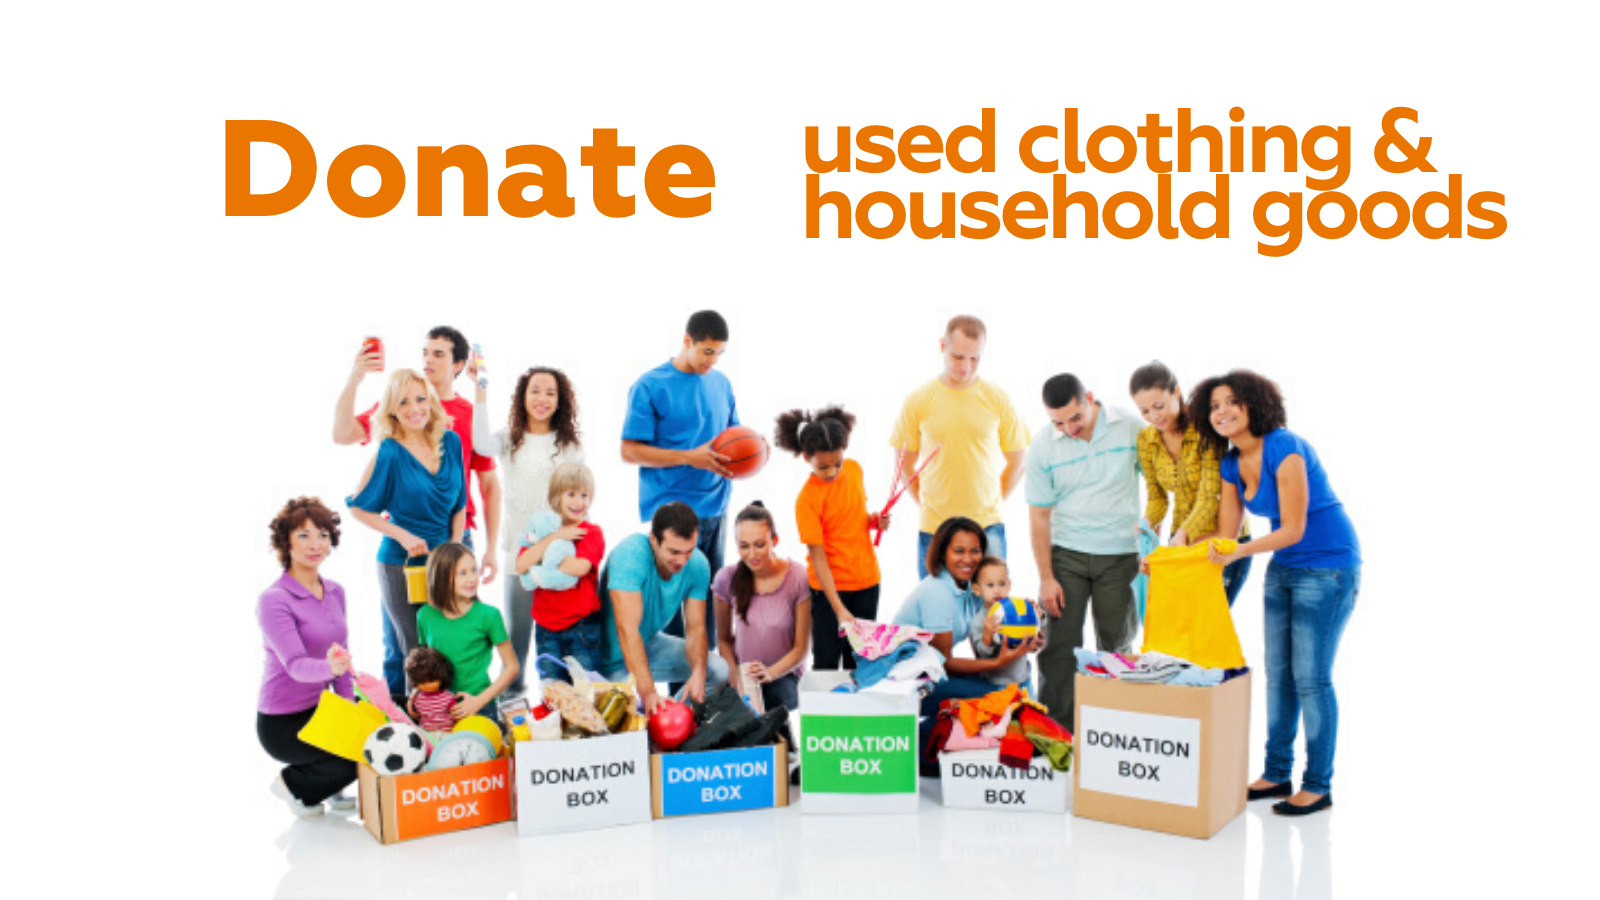 Donate used clothing and household goods